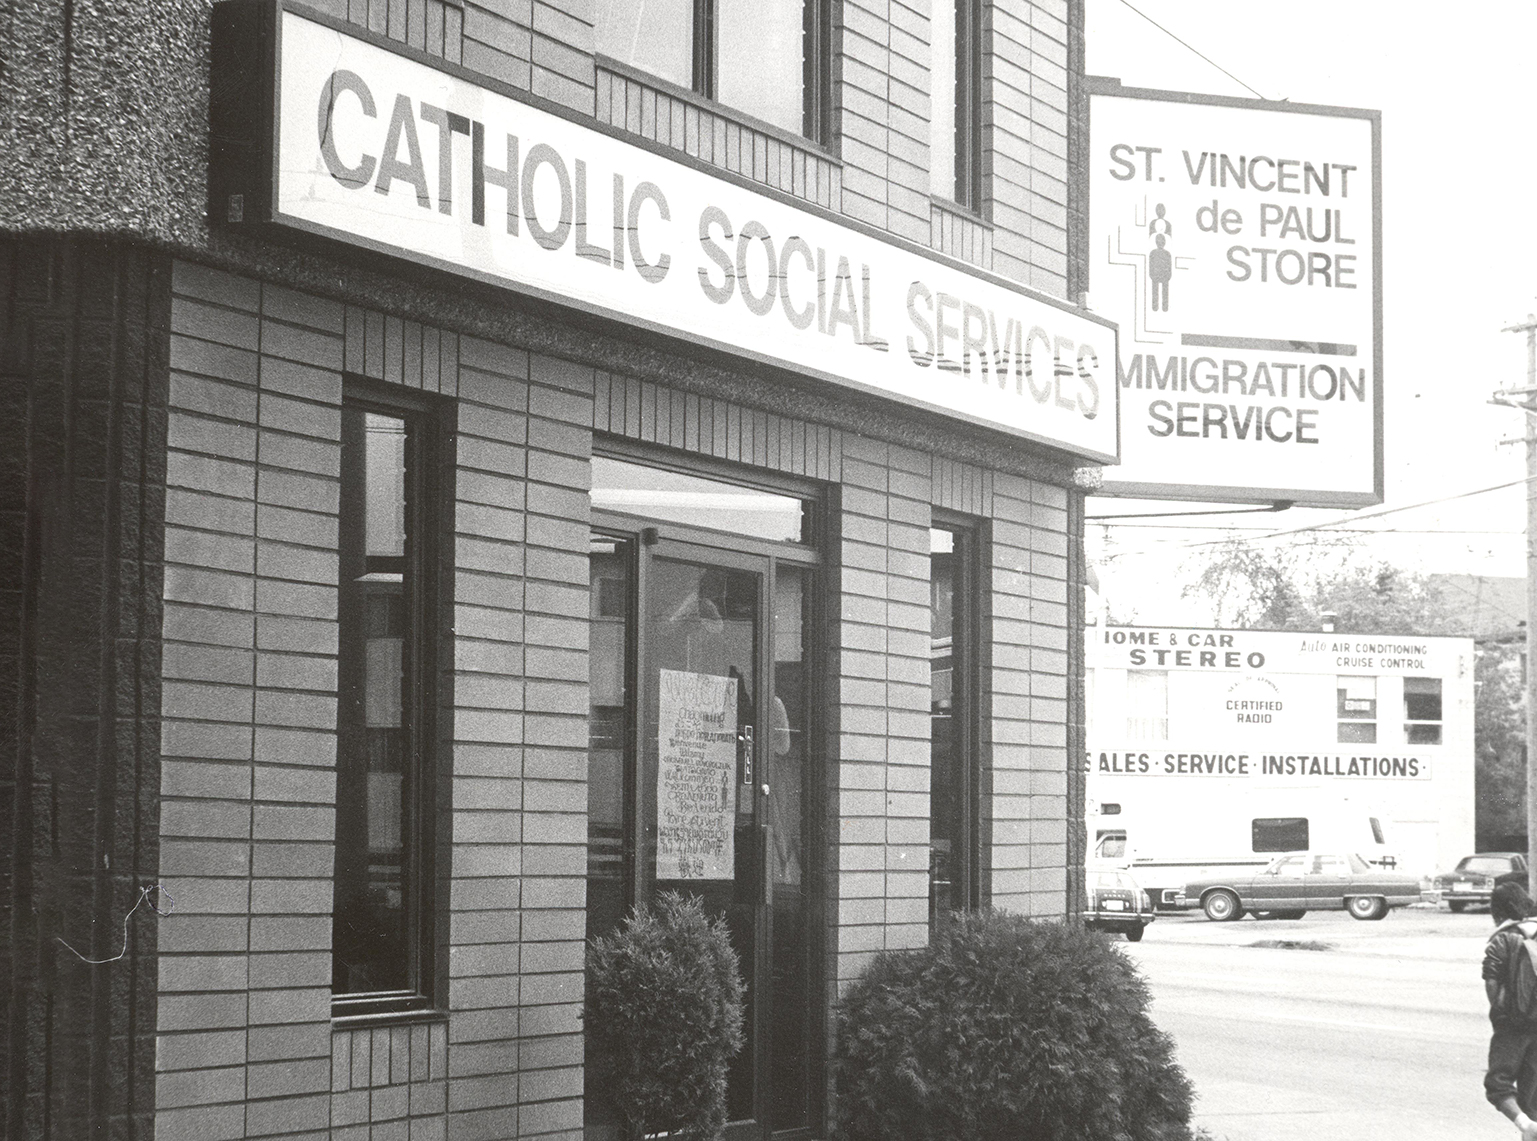 Catholic Social Services Timeline